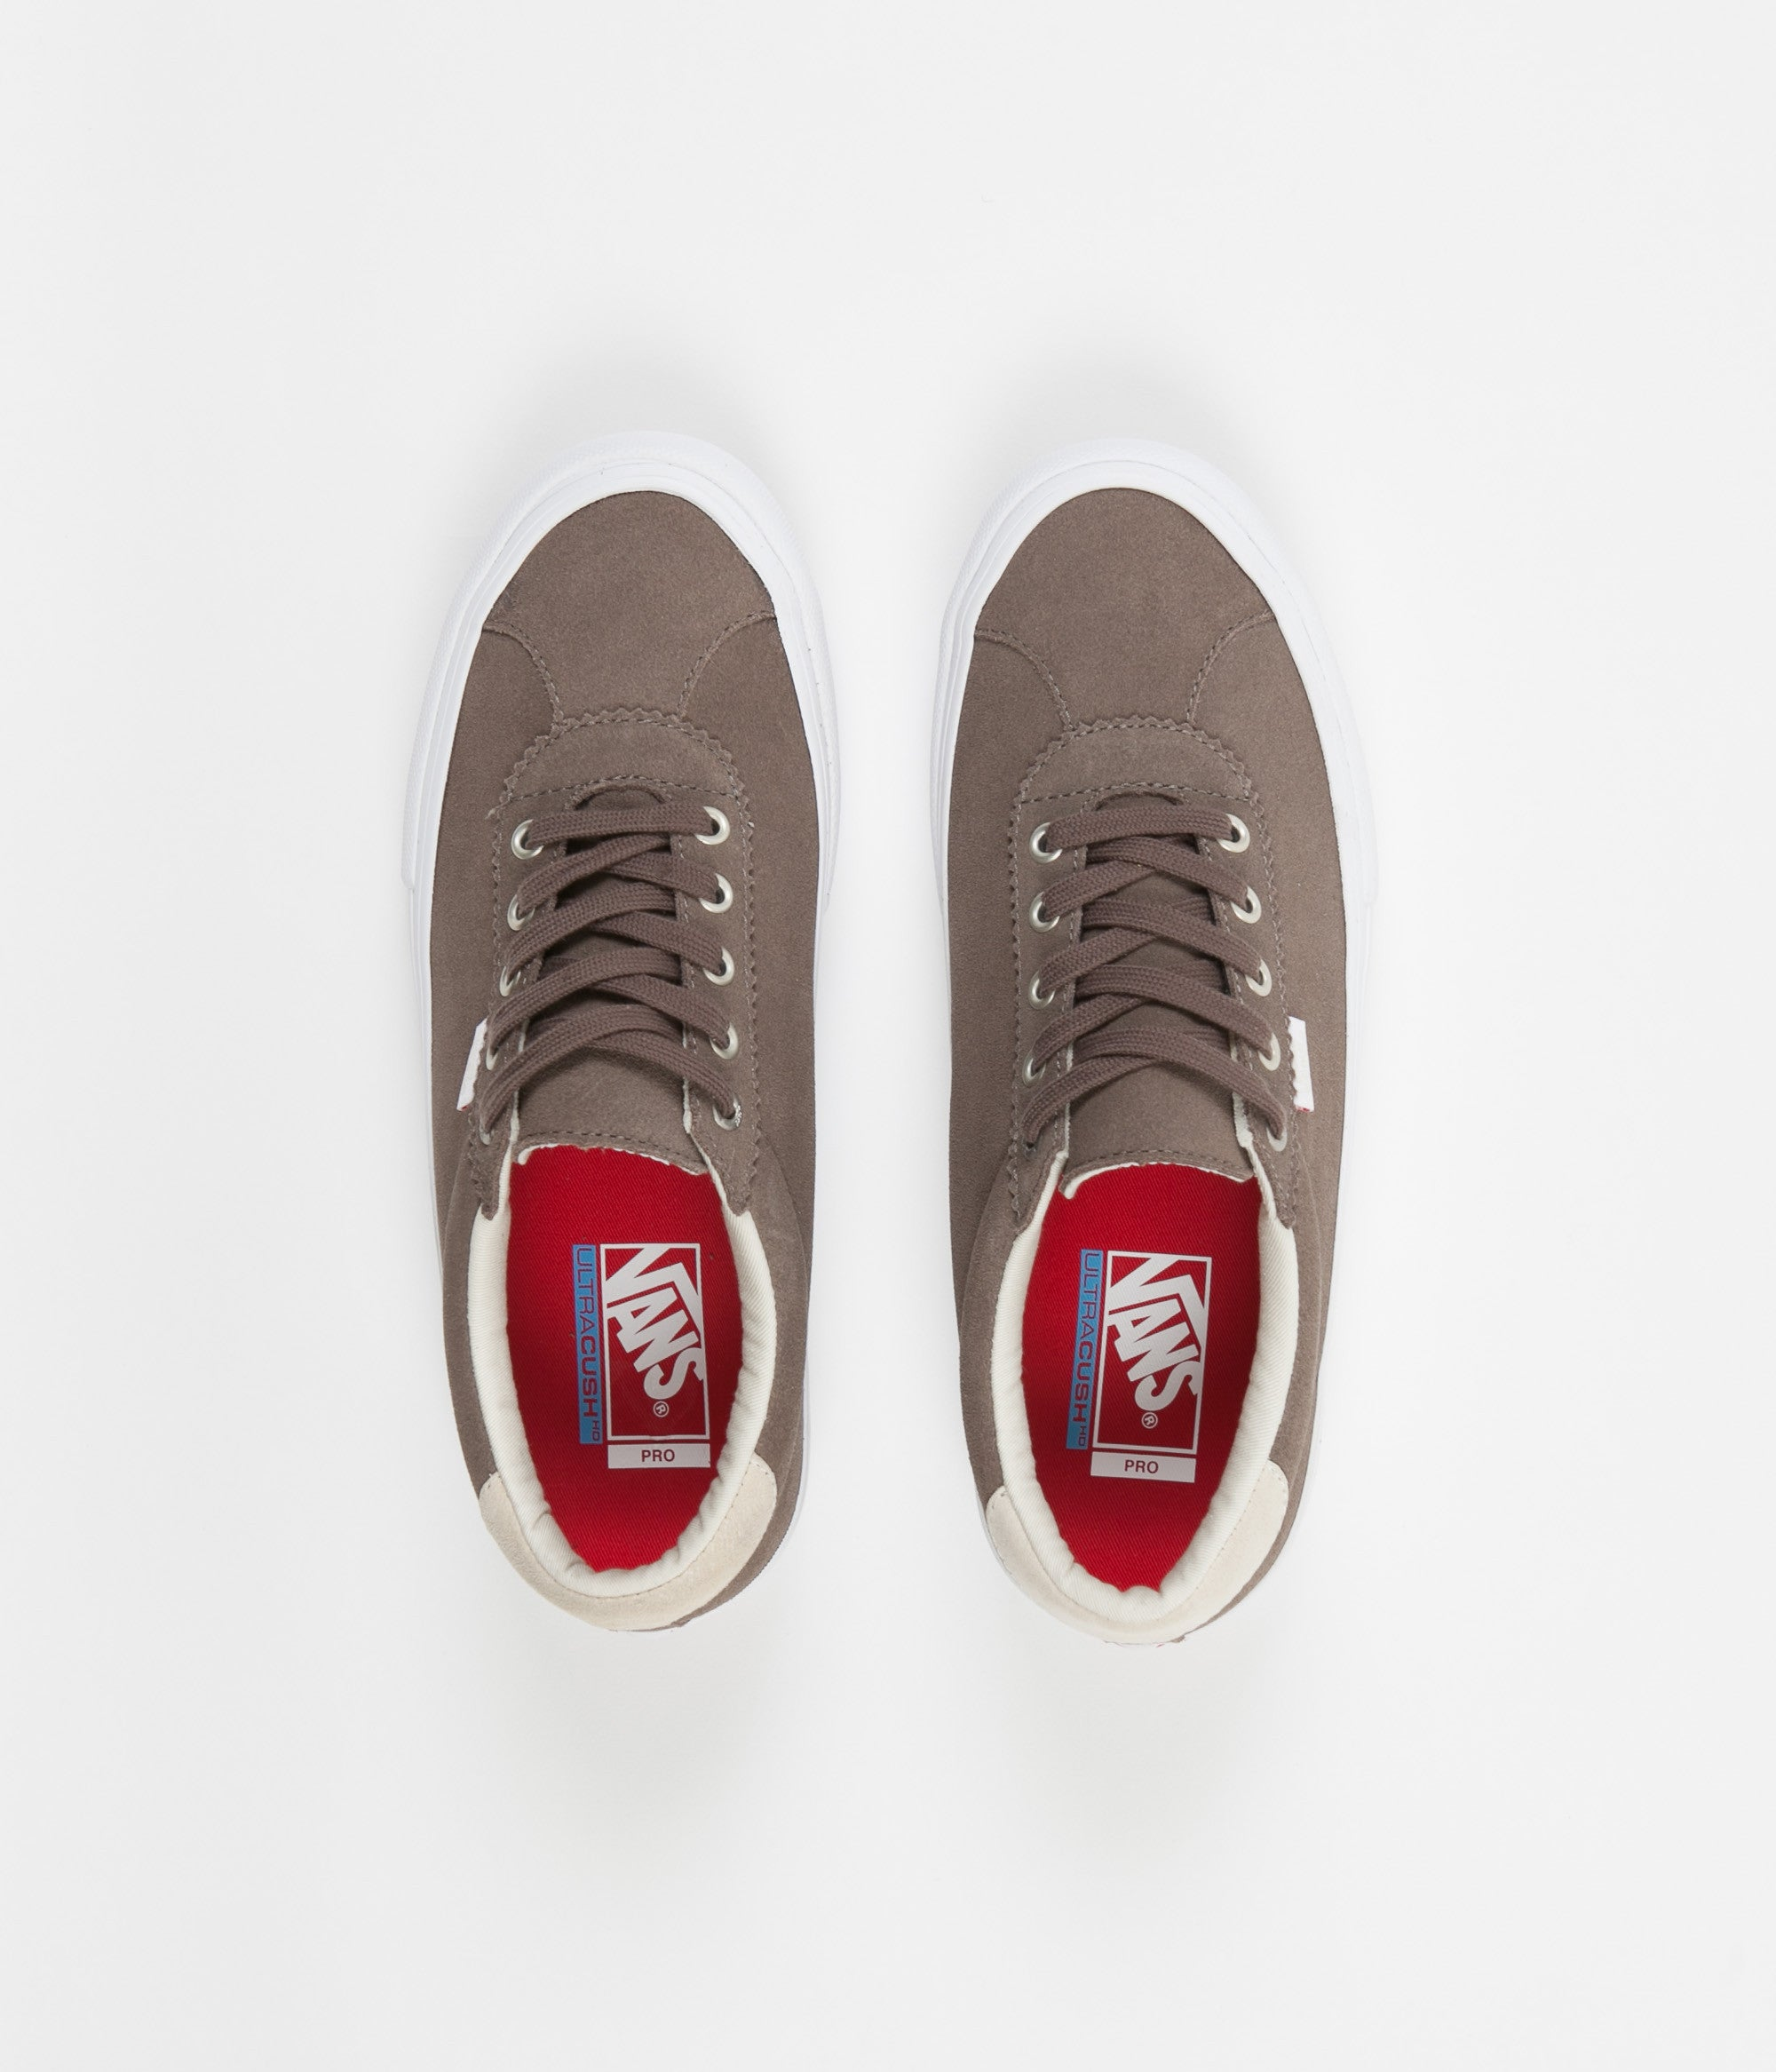 Vans Epoch Pro Shoes - Bungee Cord